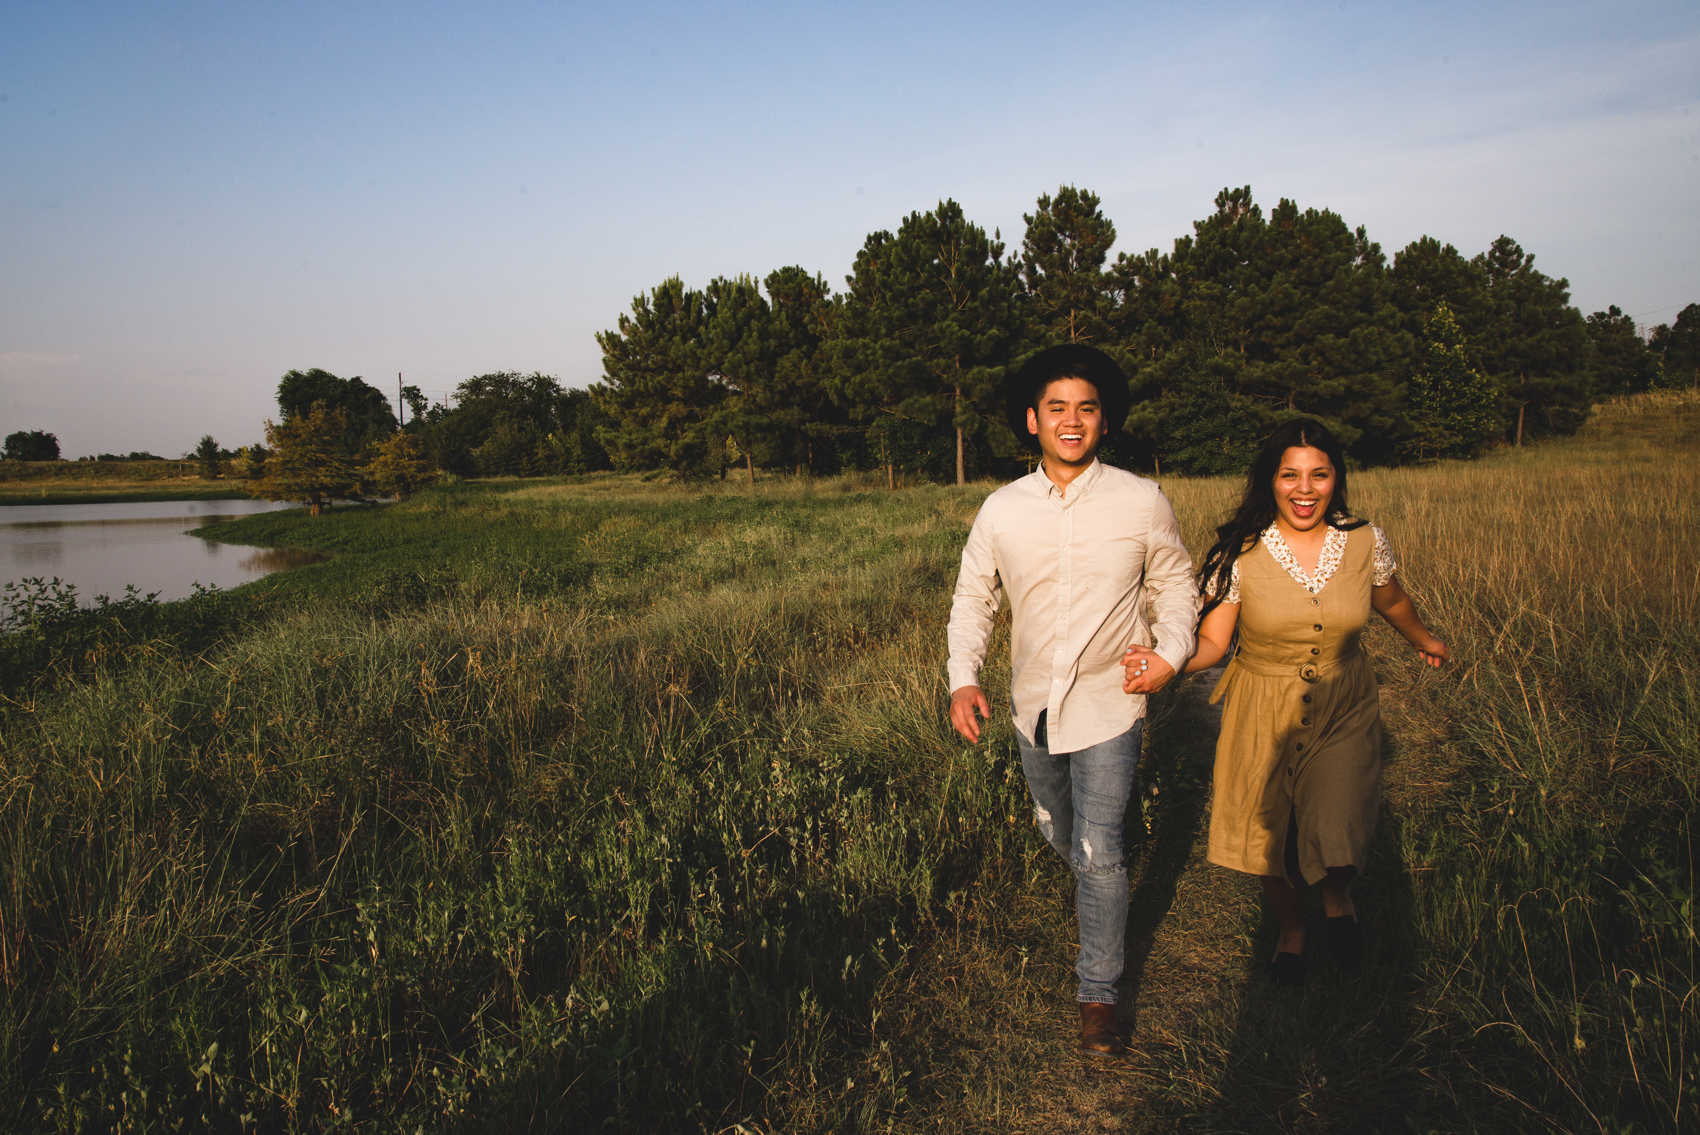 katy texas engagement session houston austin outdoor engagement session sunset inez lara photography best wedding colorado rockies elopment love destination wedding photgrapher in texas